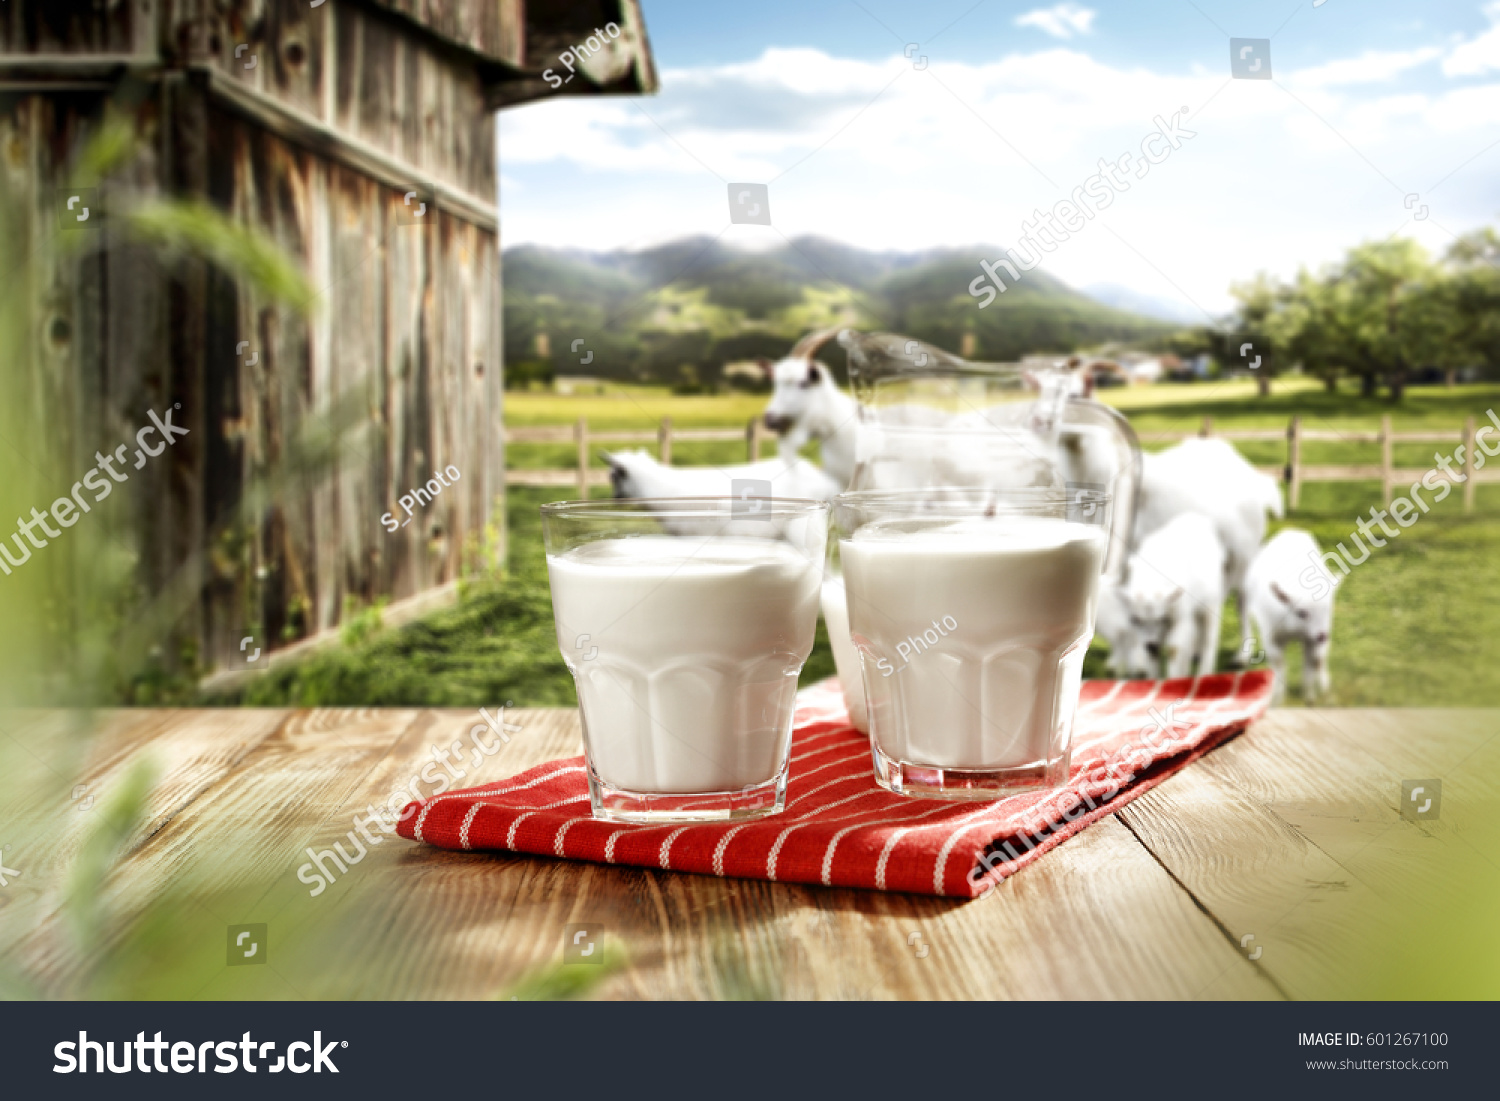 Desk Free Space Goats Stock Photo (Edit Now) 601267100